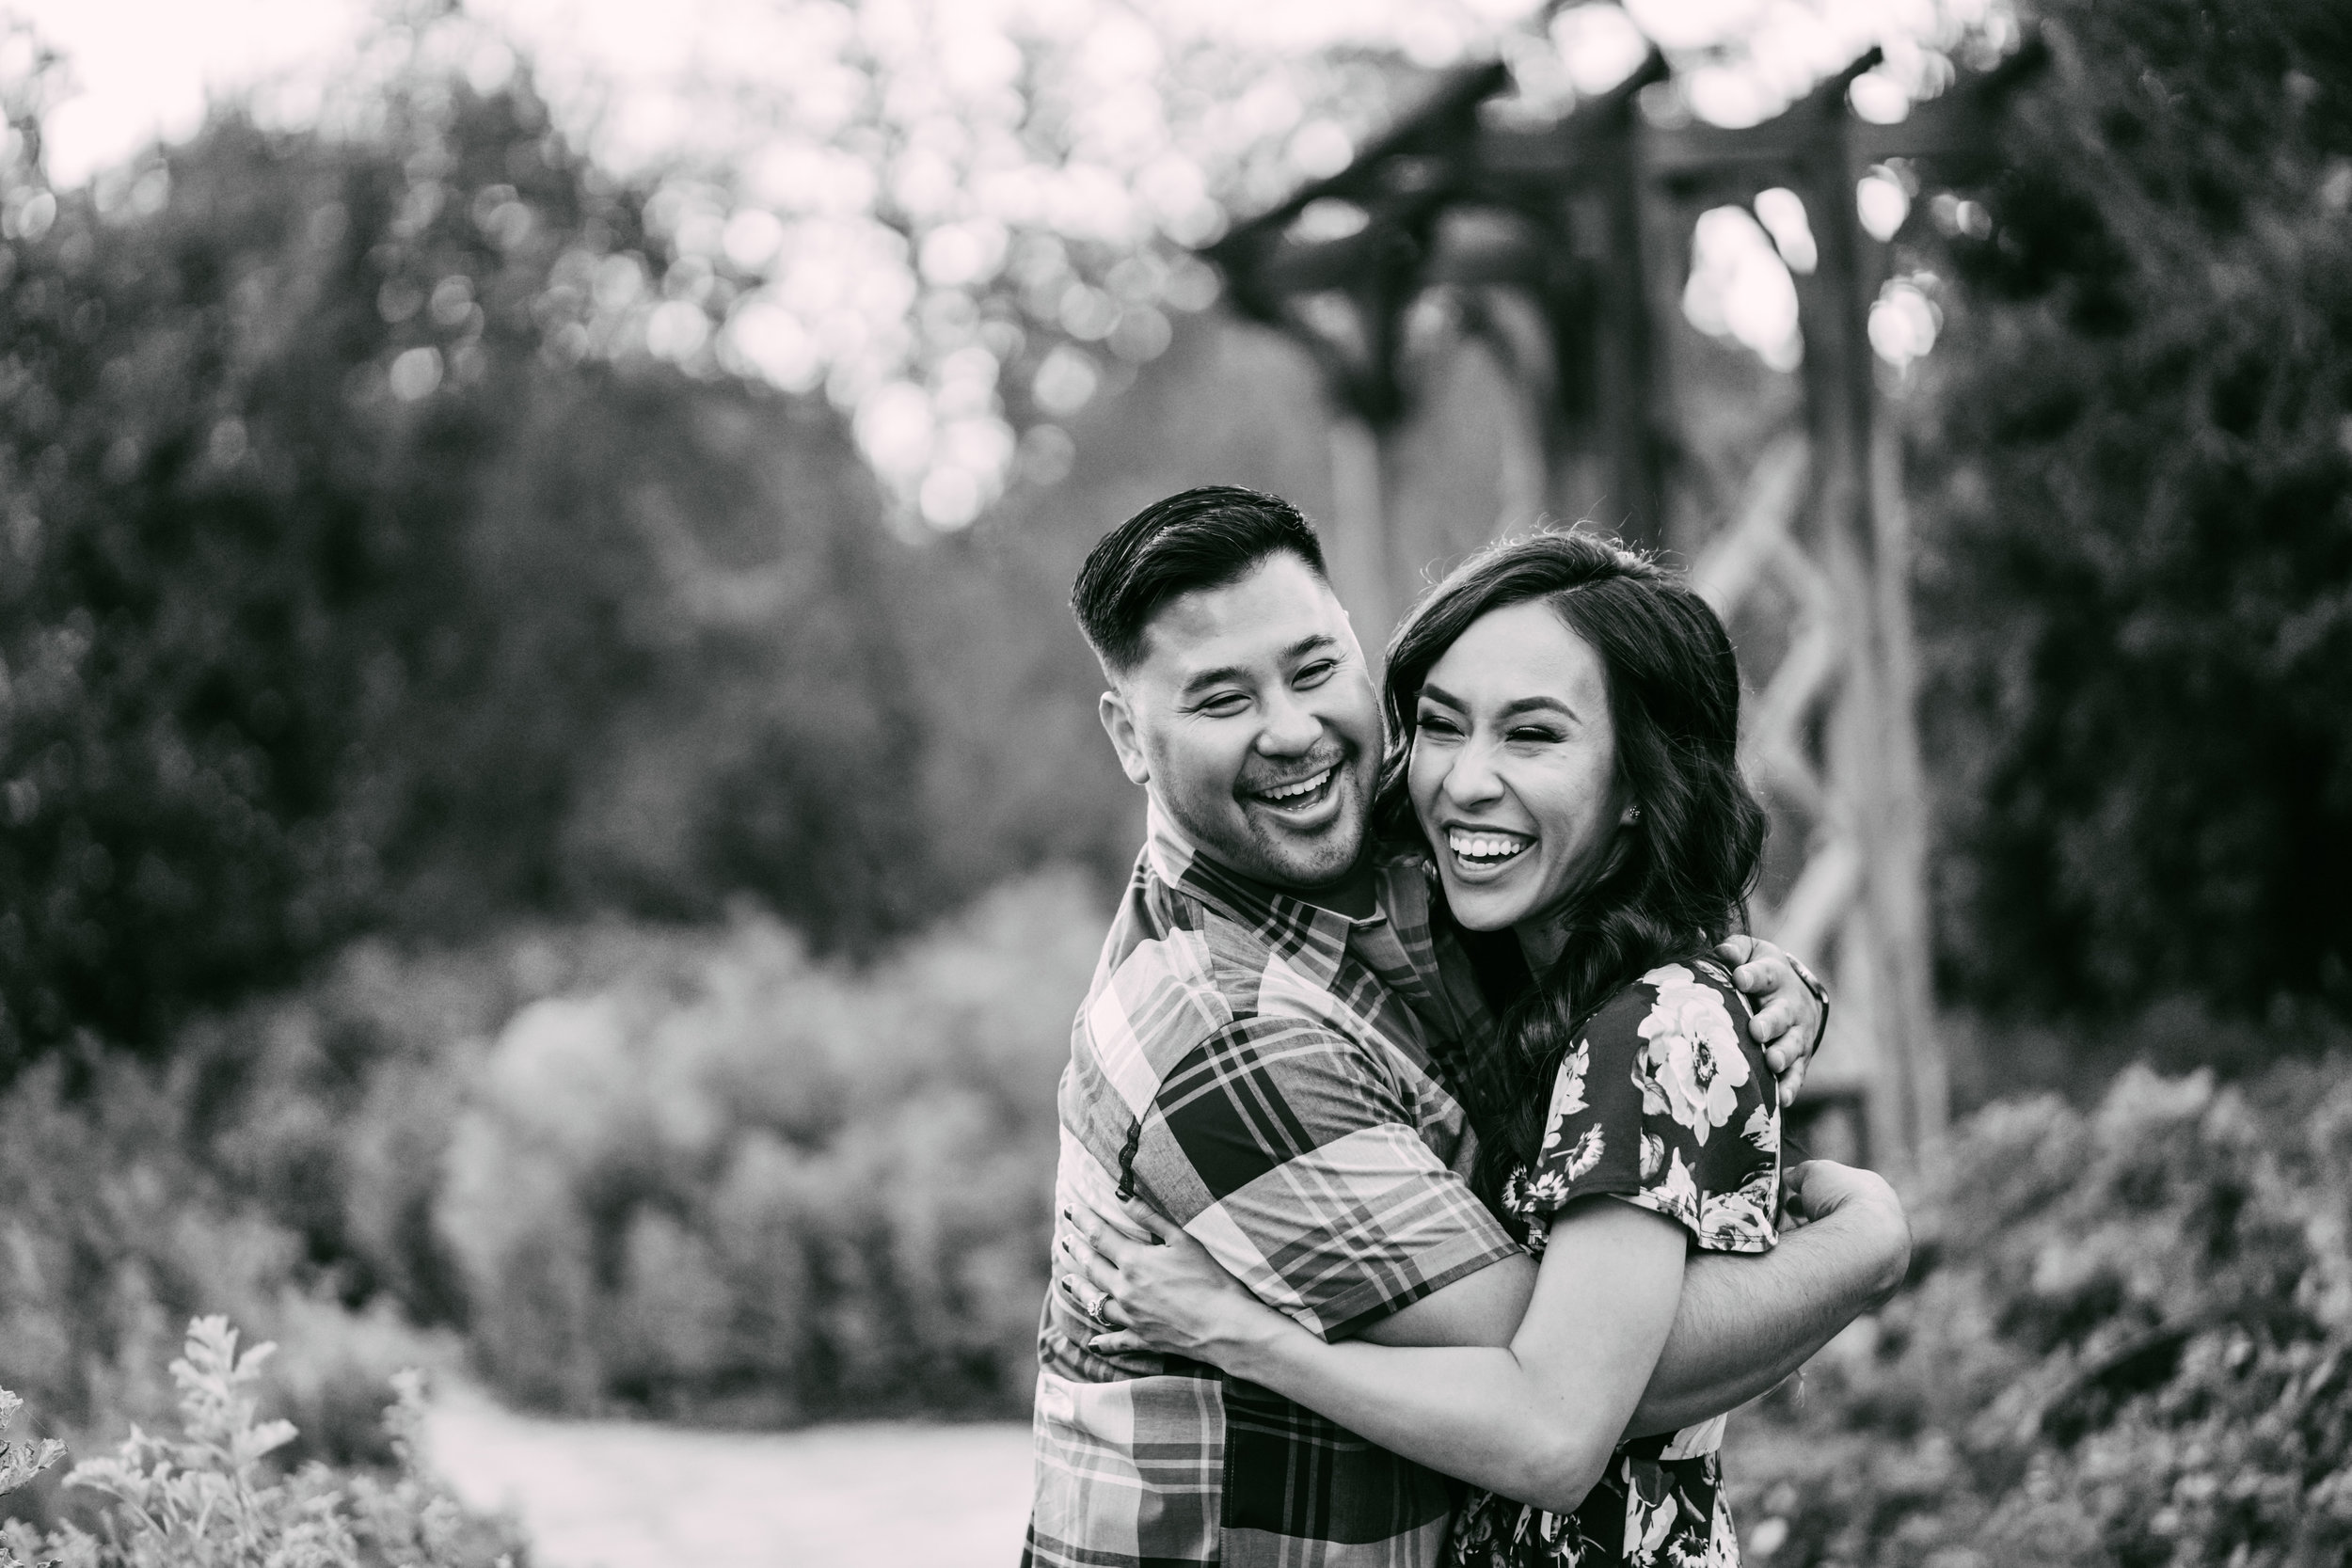 la-county-arboretum-engagement-photo-nick-veronica-0-3.jpg